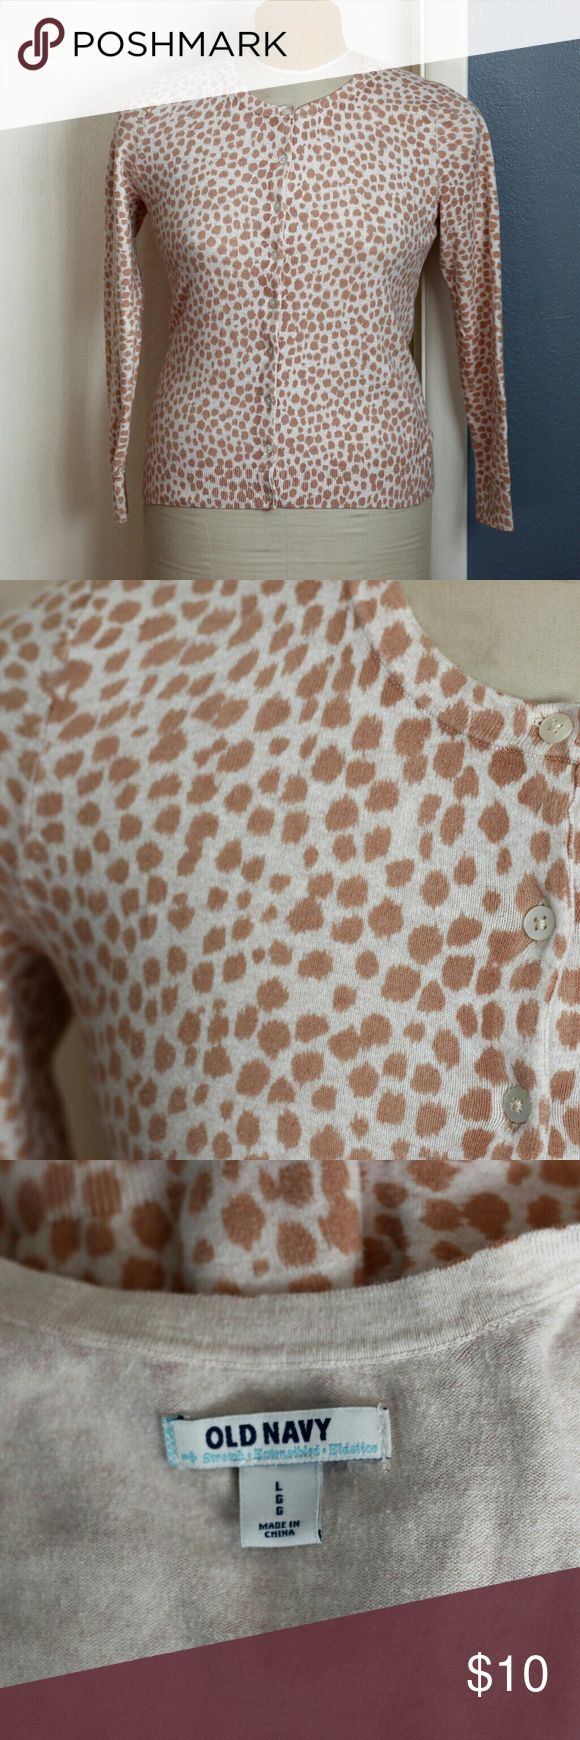 Old Navy Giraffe Print Cardigan - Large So cute! Giraffe print cardigan by Old Navy.  It's a bit pilly, but in overall good condition. Old Navy Sweaters Cardigans